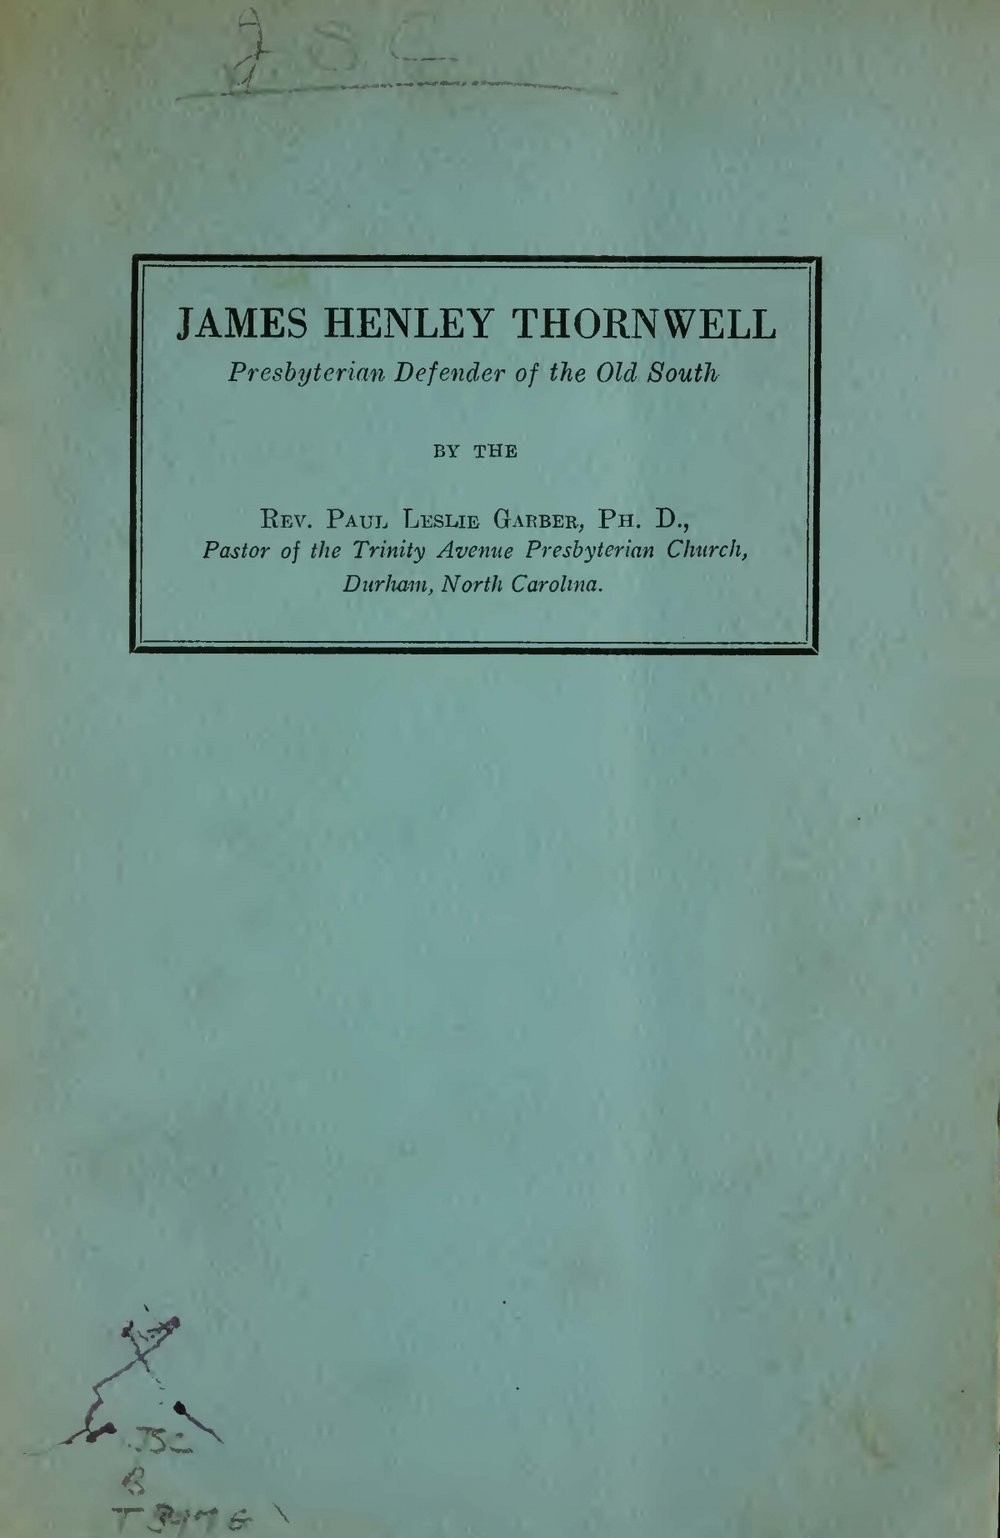 James Henley Thornwell: Presbyterian Defender of the Old South (Paul Leslie Garber)  This is a portion of his 1939 Ph.D. thesis, reprinted in 1943.